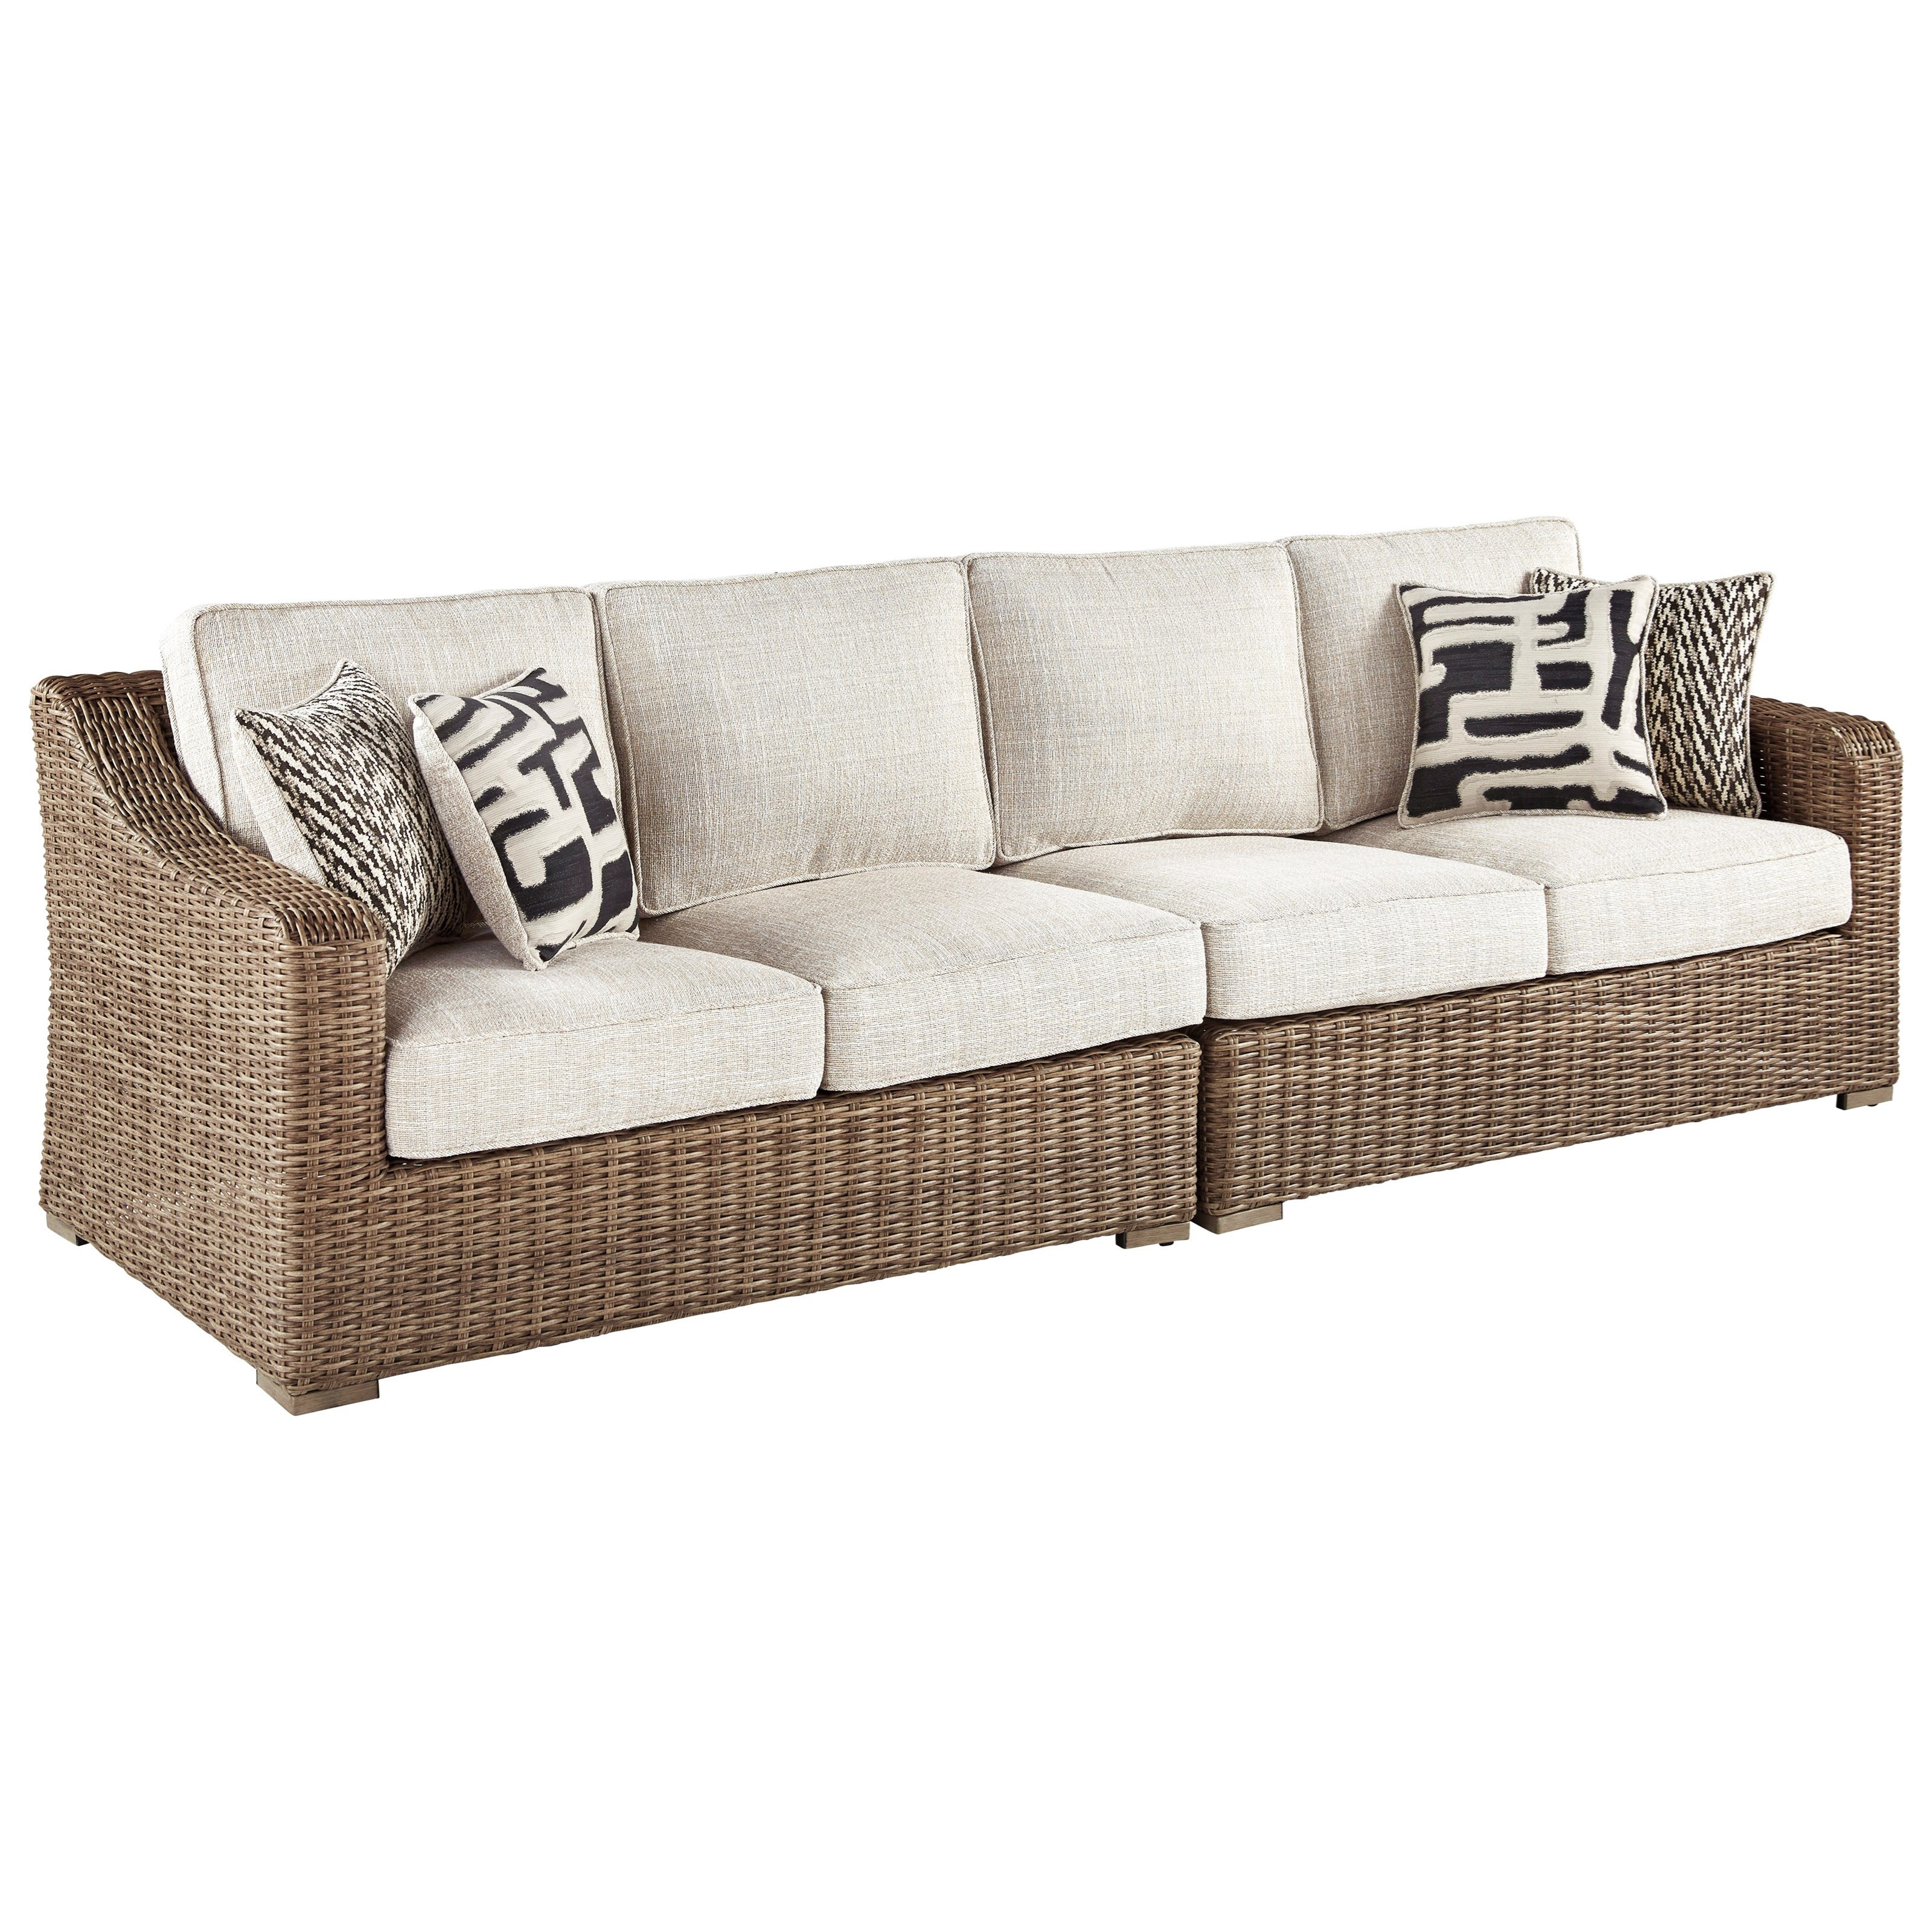 Beachcroft RAF/LAF Loveseat with Cushion by StyleLine at EFO Furniture Outlet